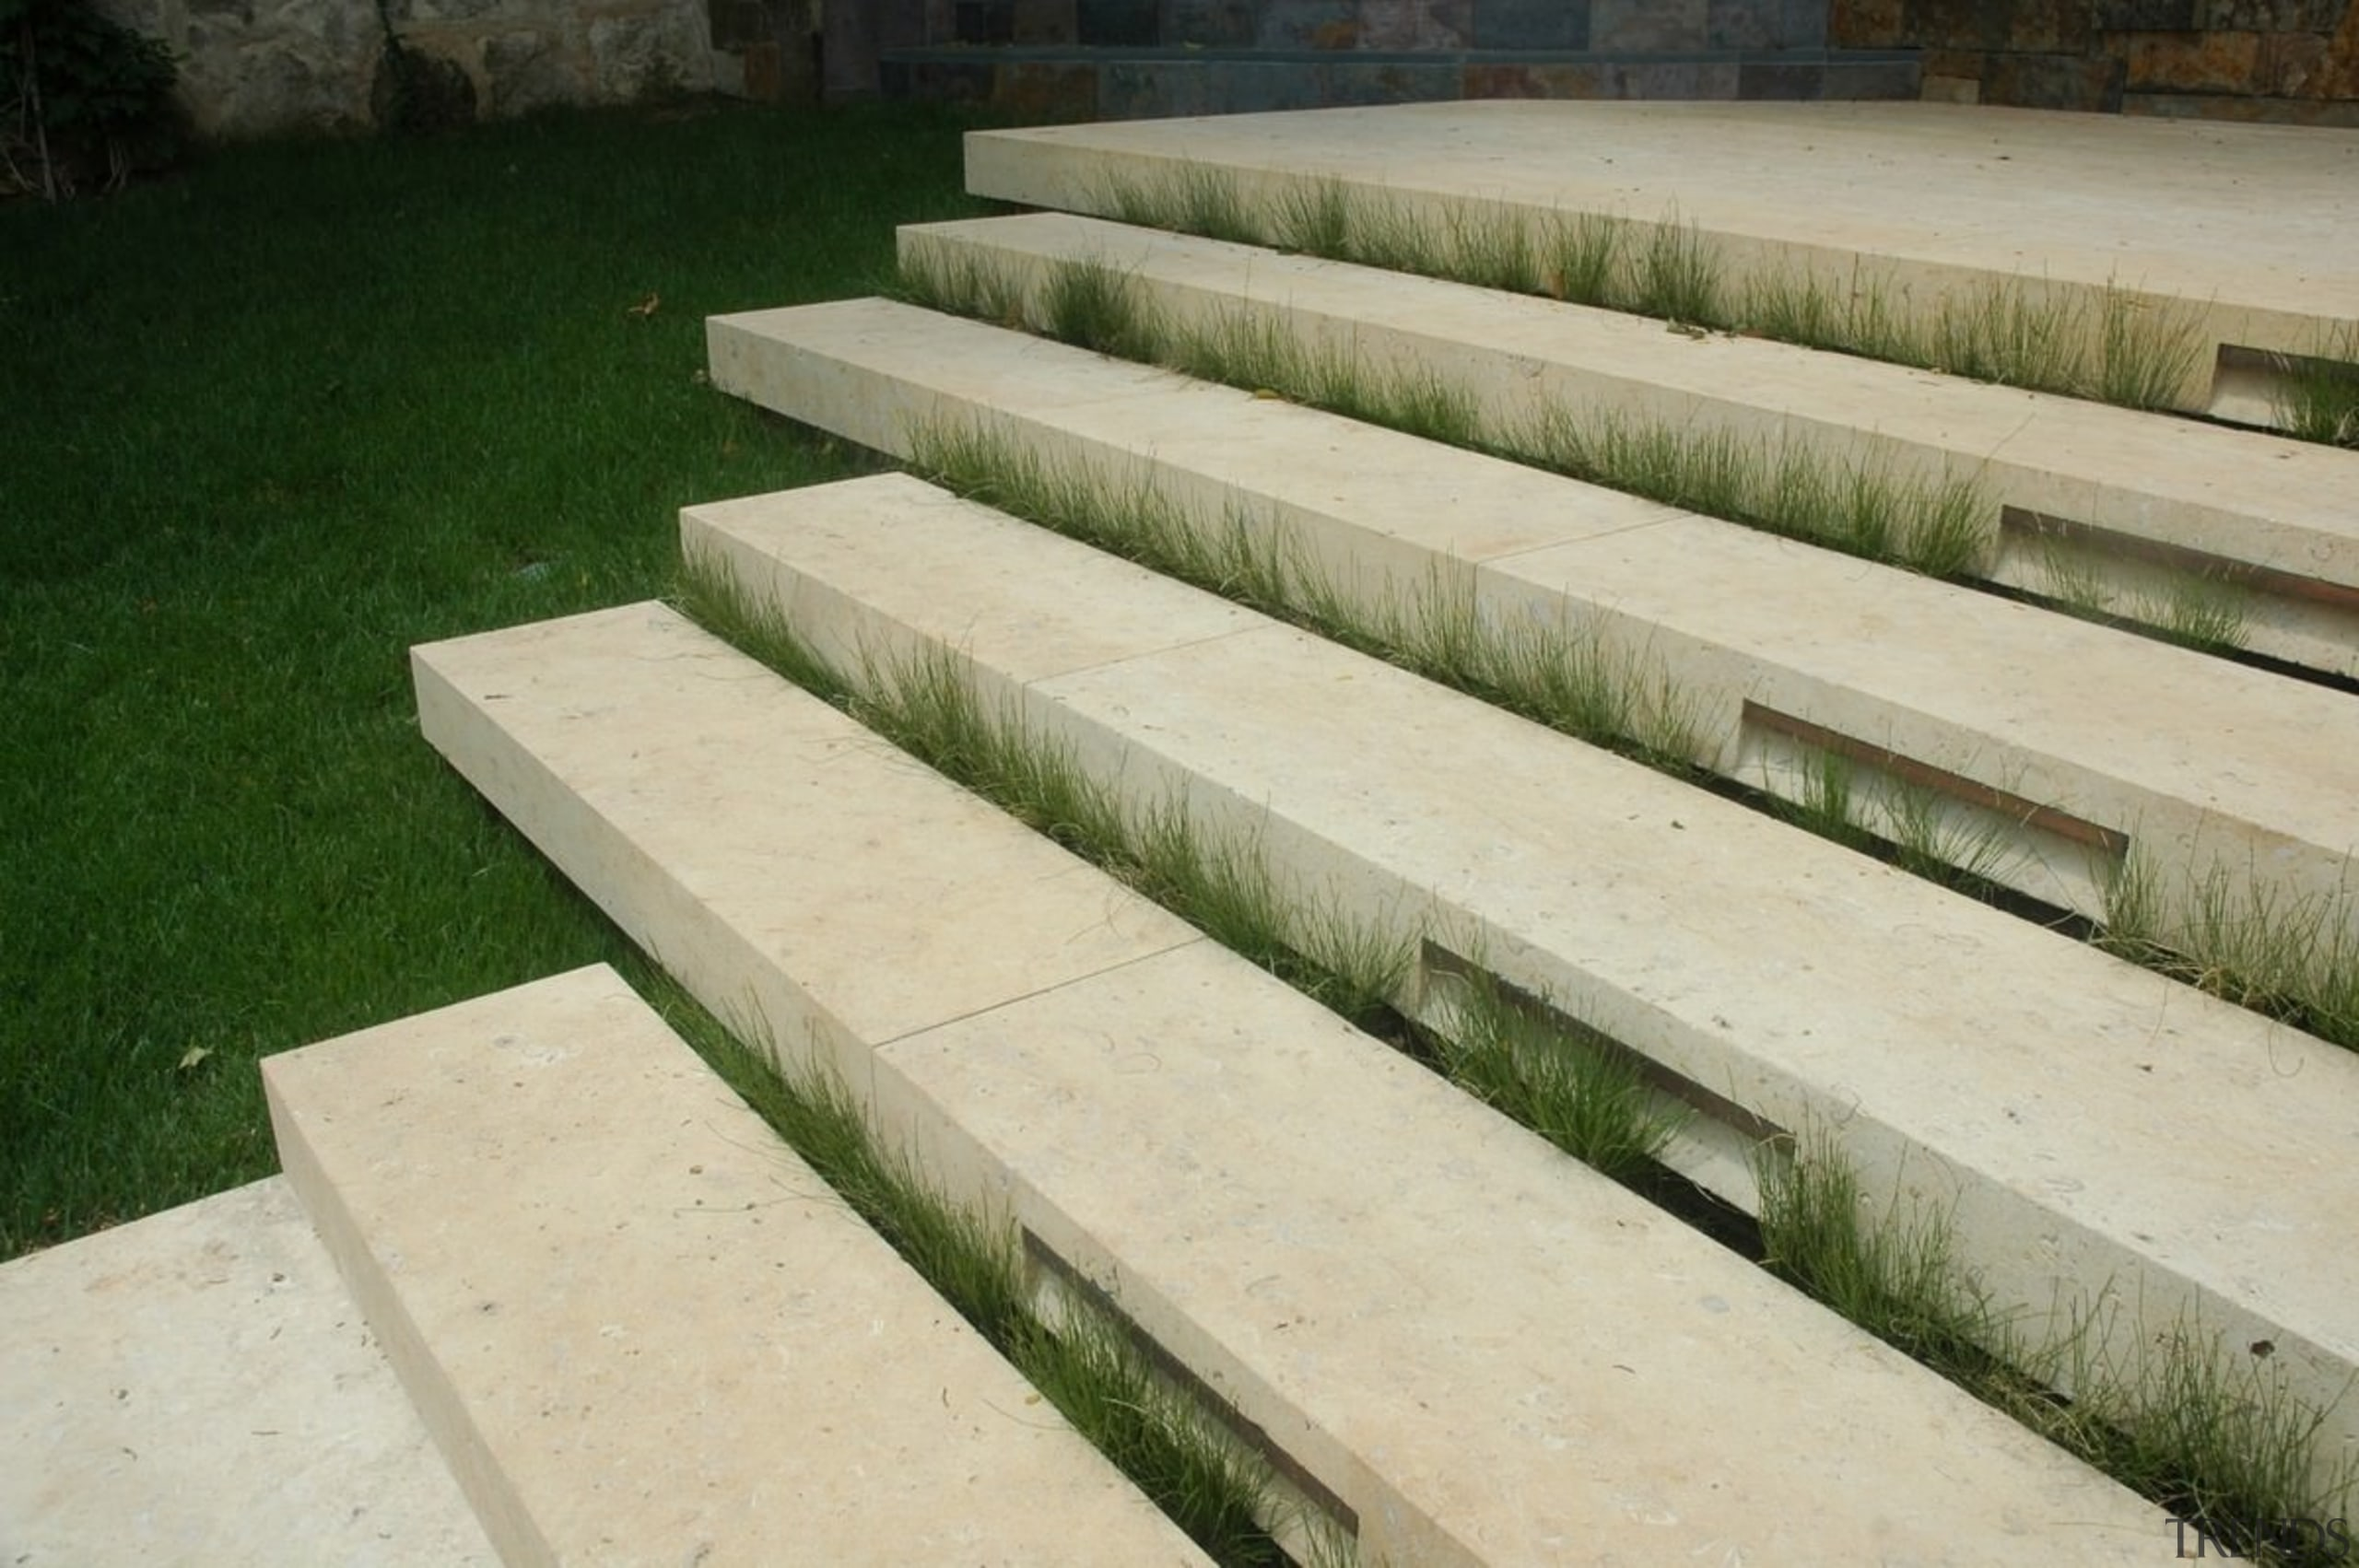 Stone steps connect the different areas - Stone grass, walkway, wall, wood, orange